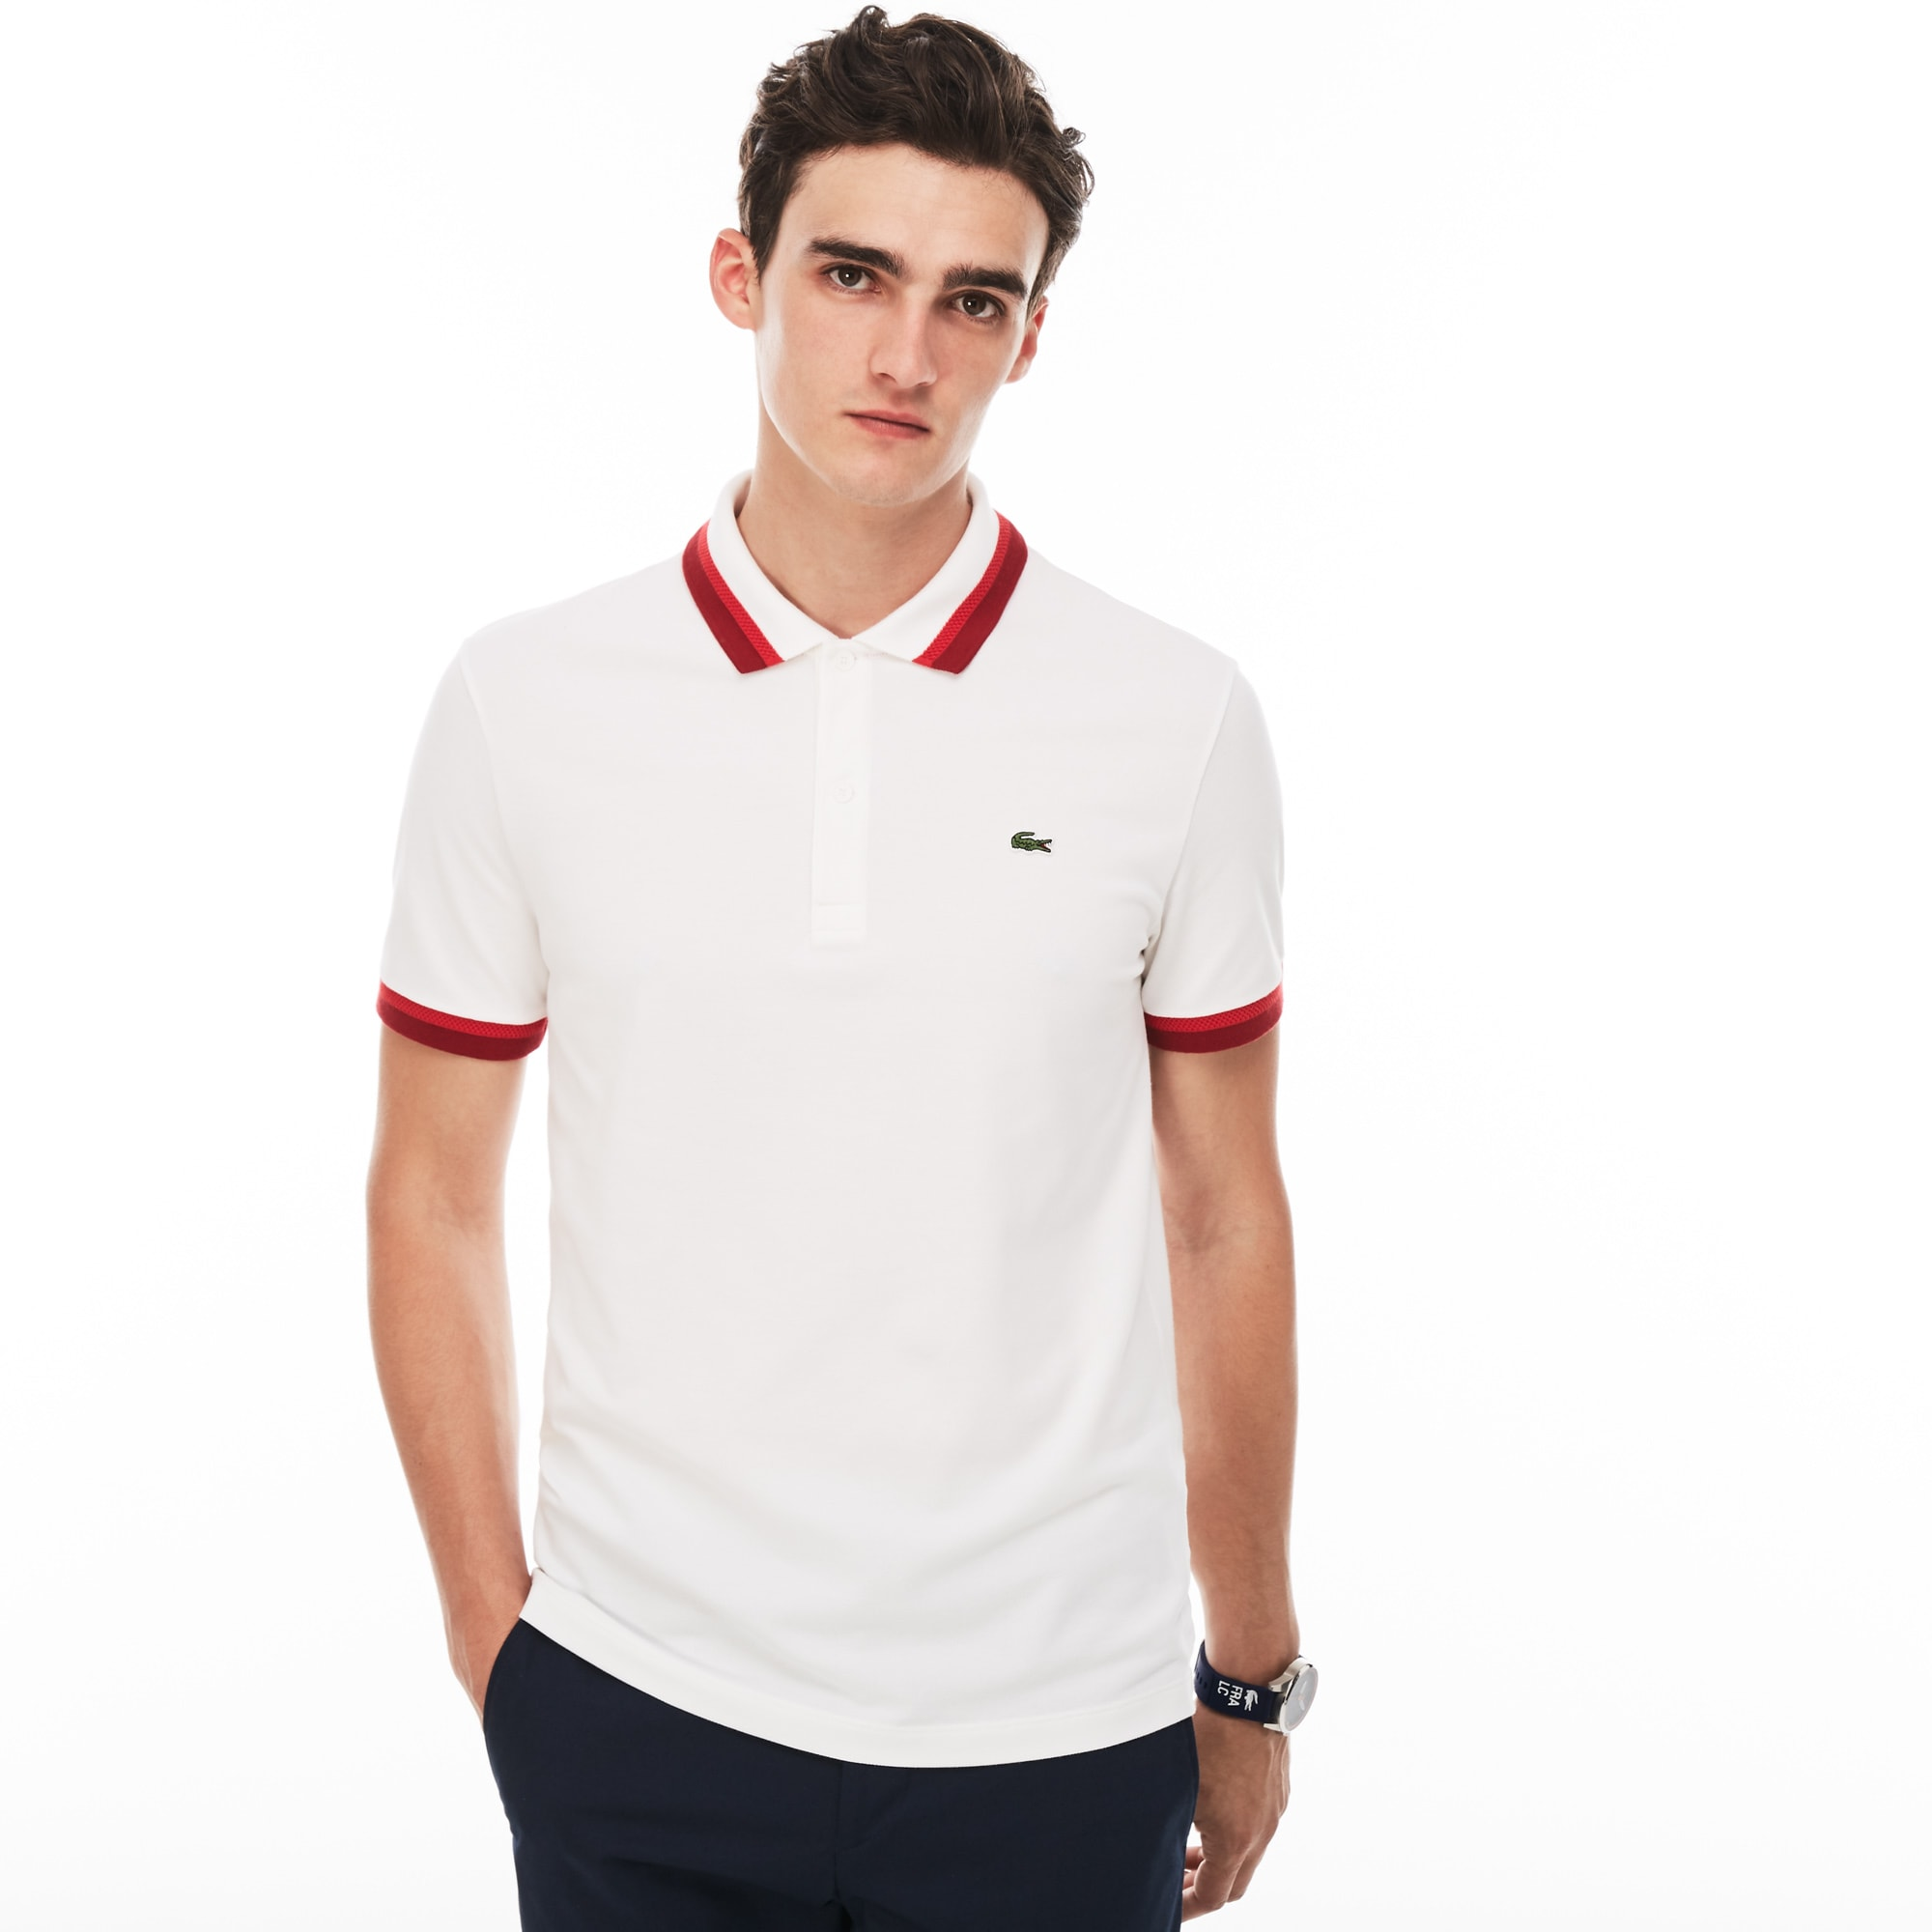 Men's Lacoste Slim Fit Contrast Accents Stretch Pima Piqué Polo Shirt